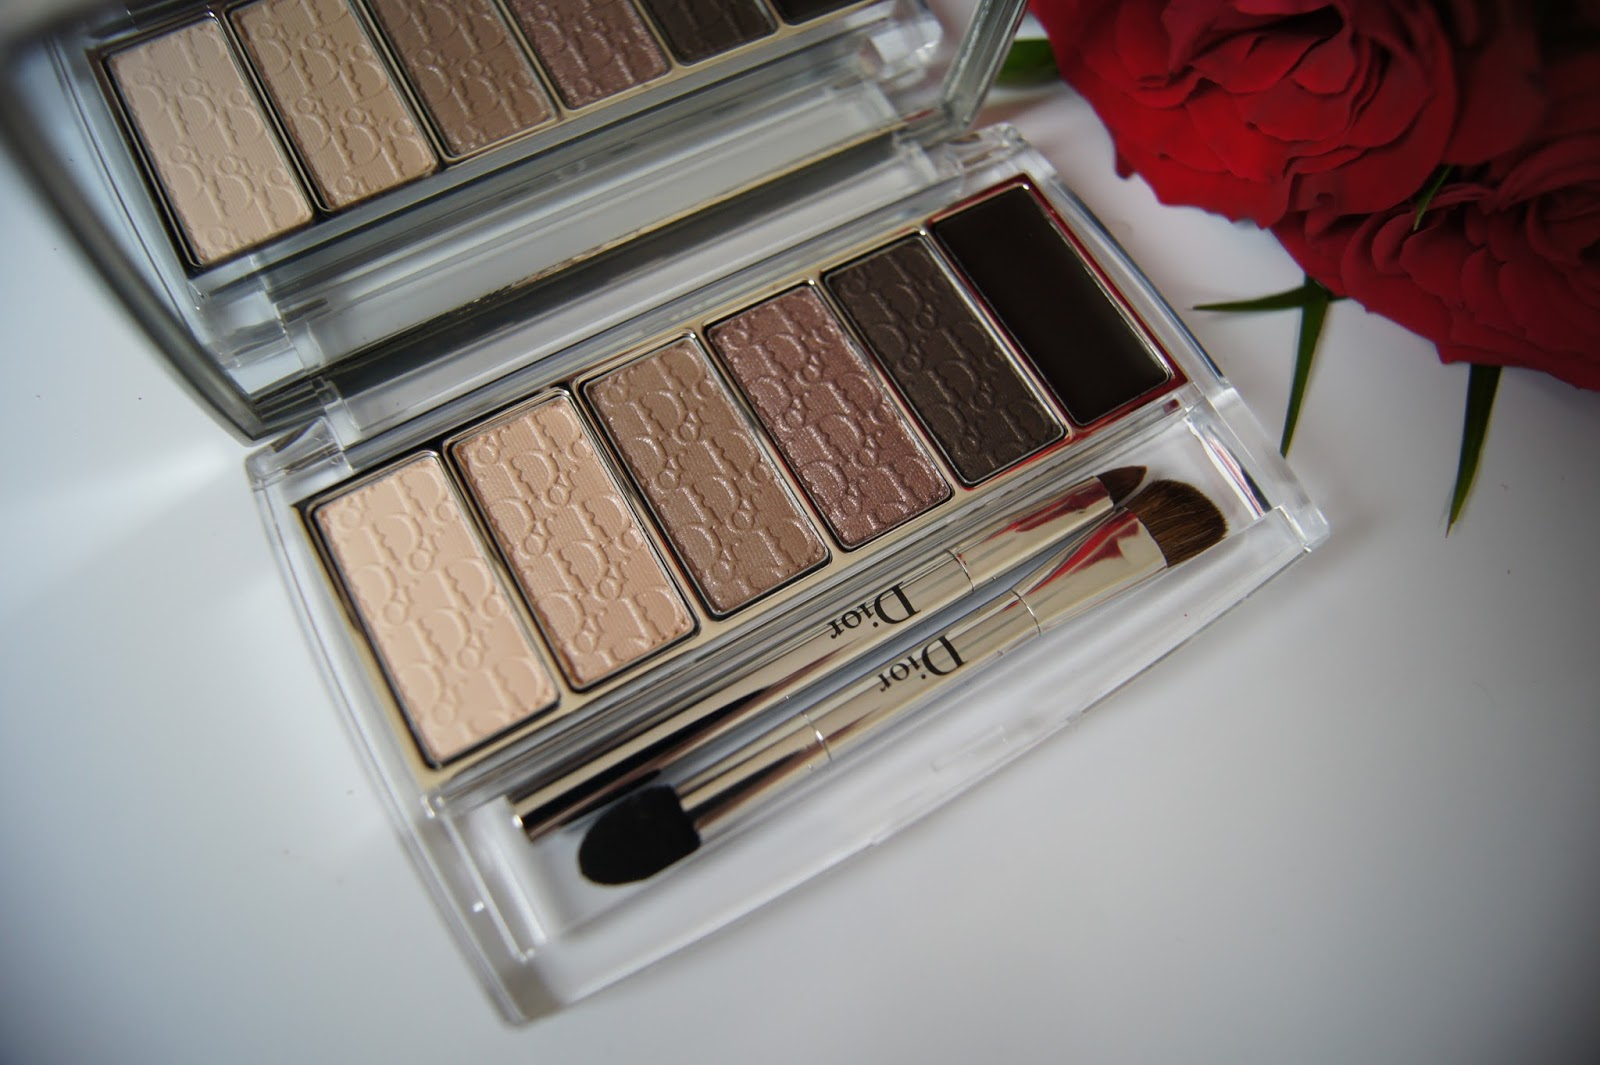 Dior Eye Reviver Eyeshadow Palette review